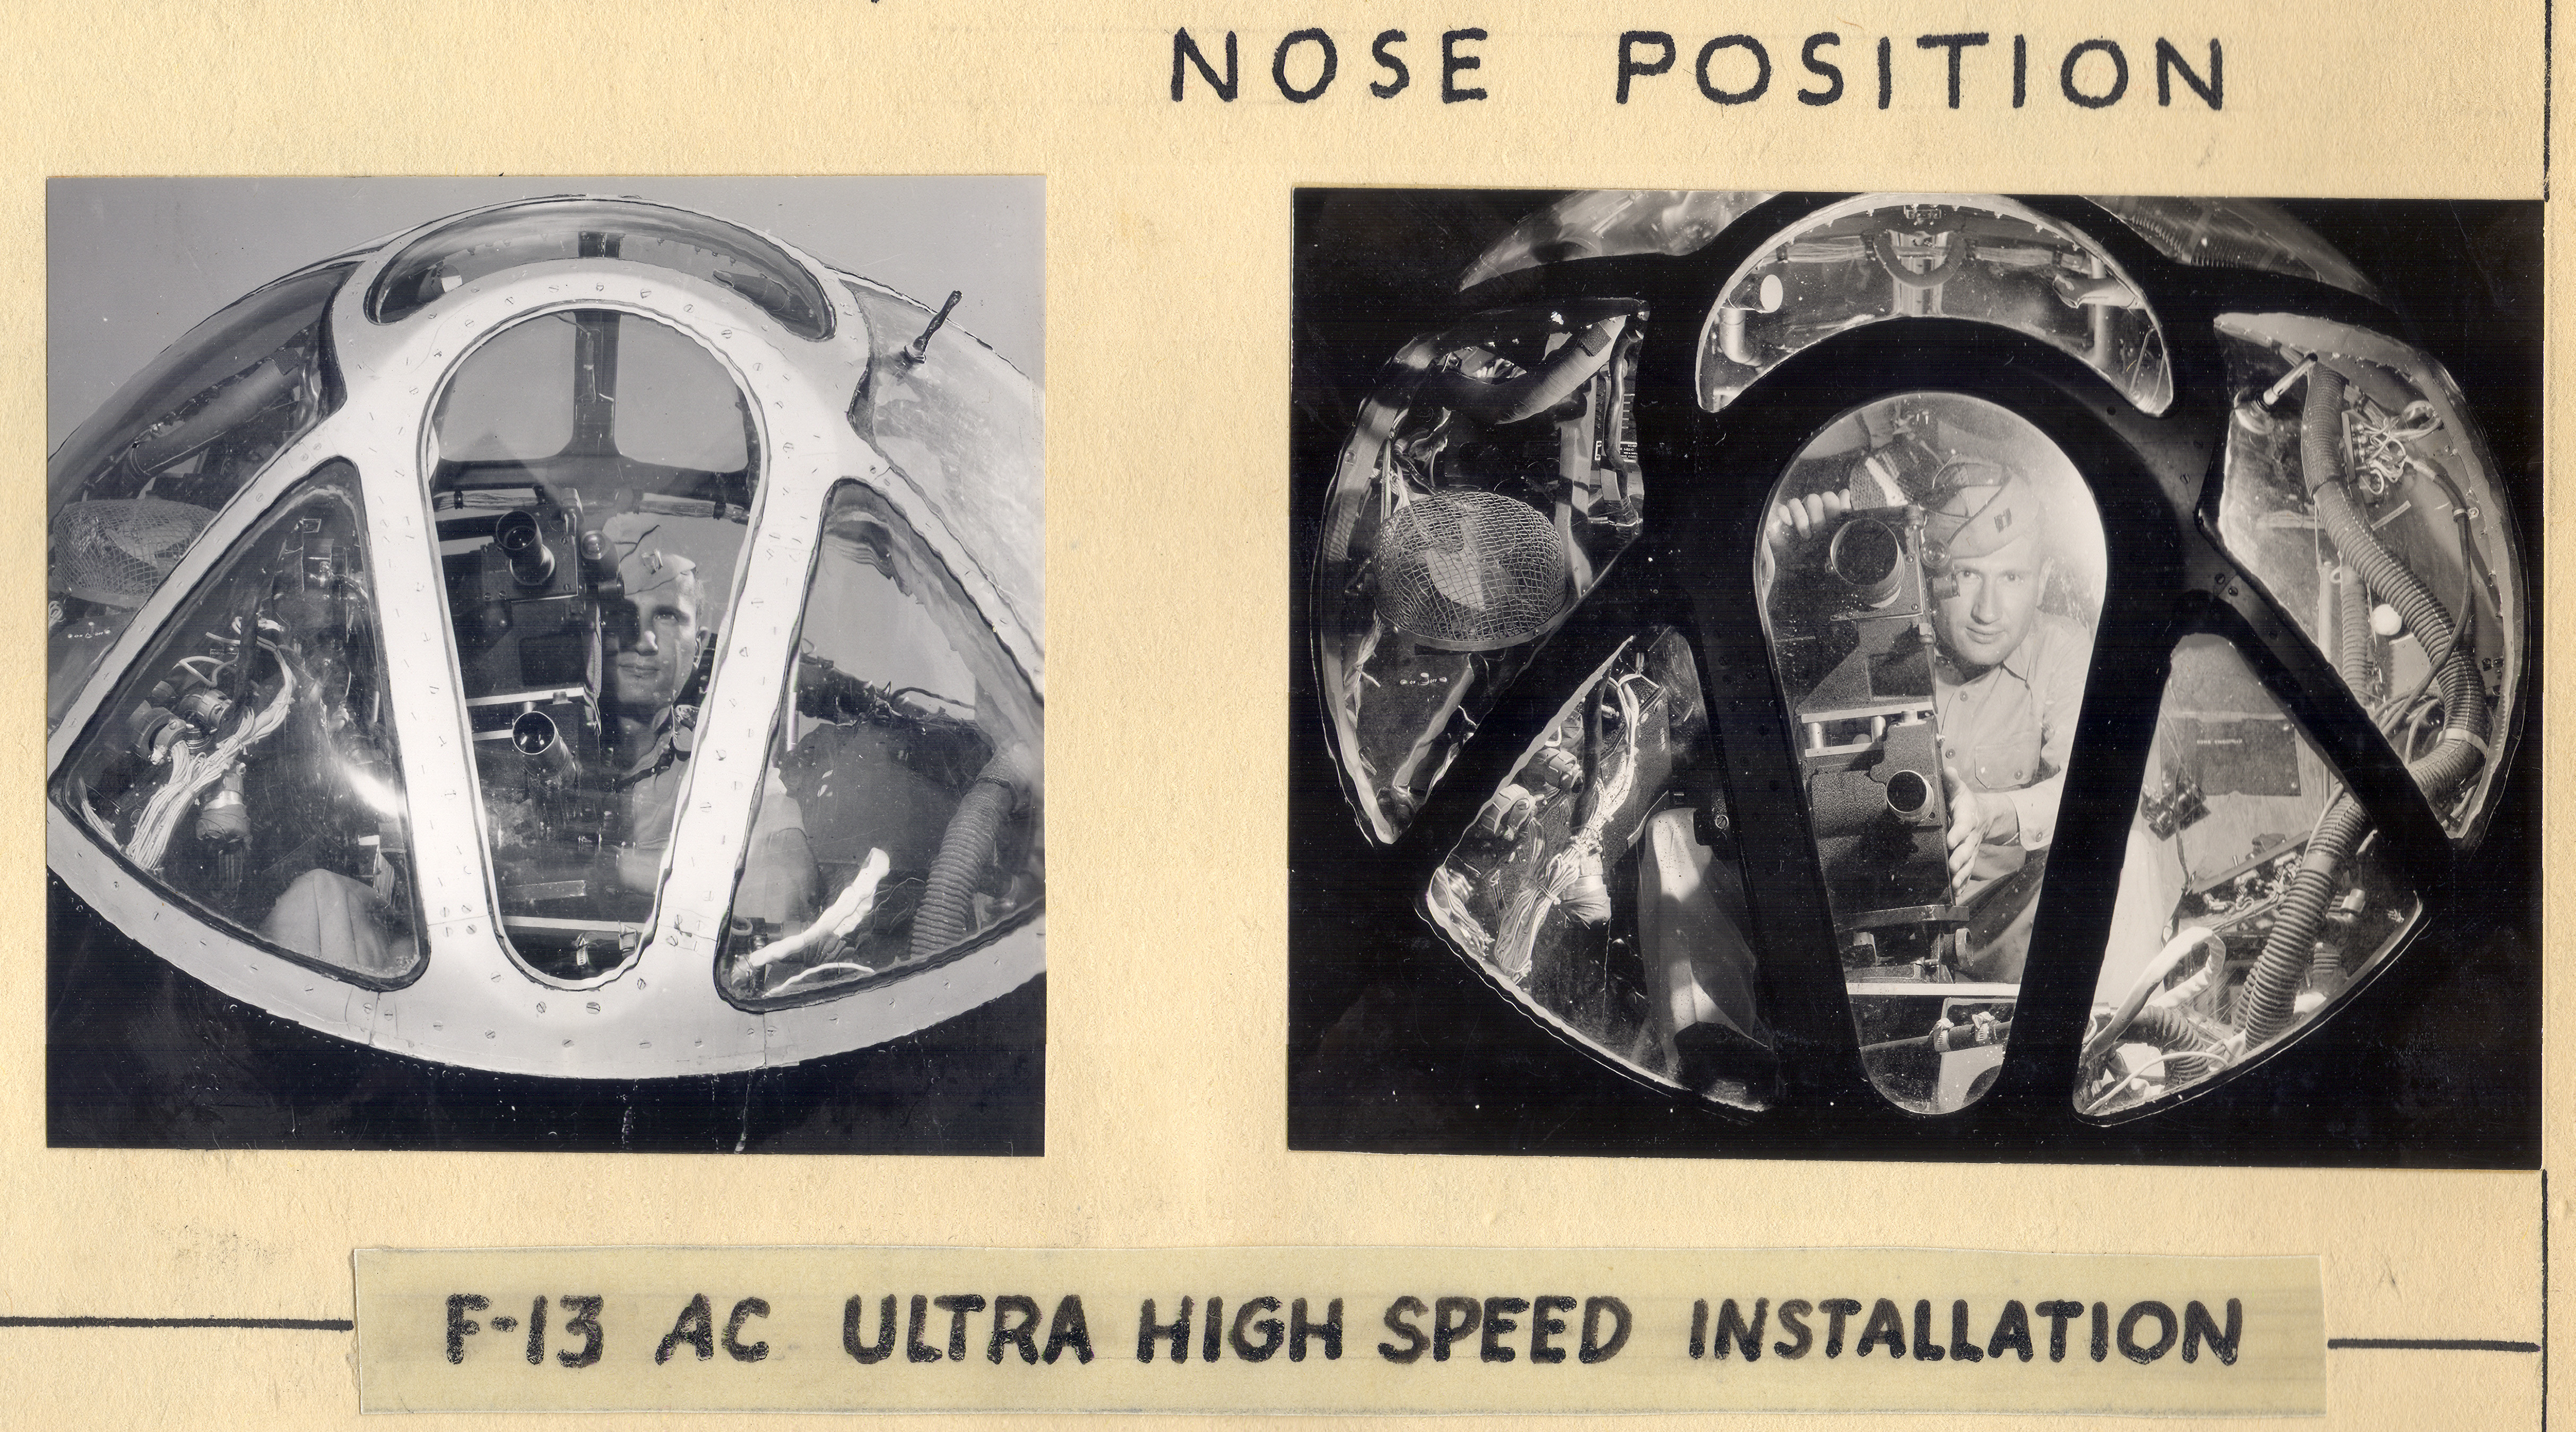 Cameras in the Nose of the Airplane, 1945-1946